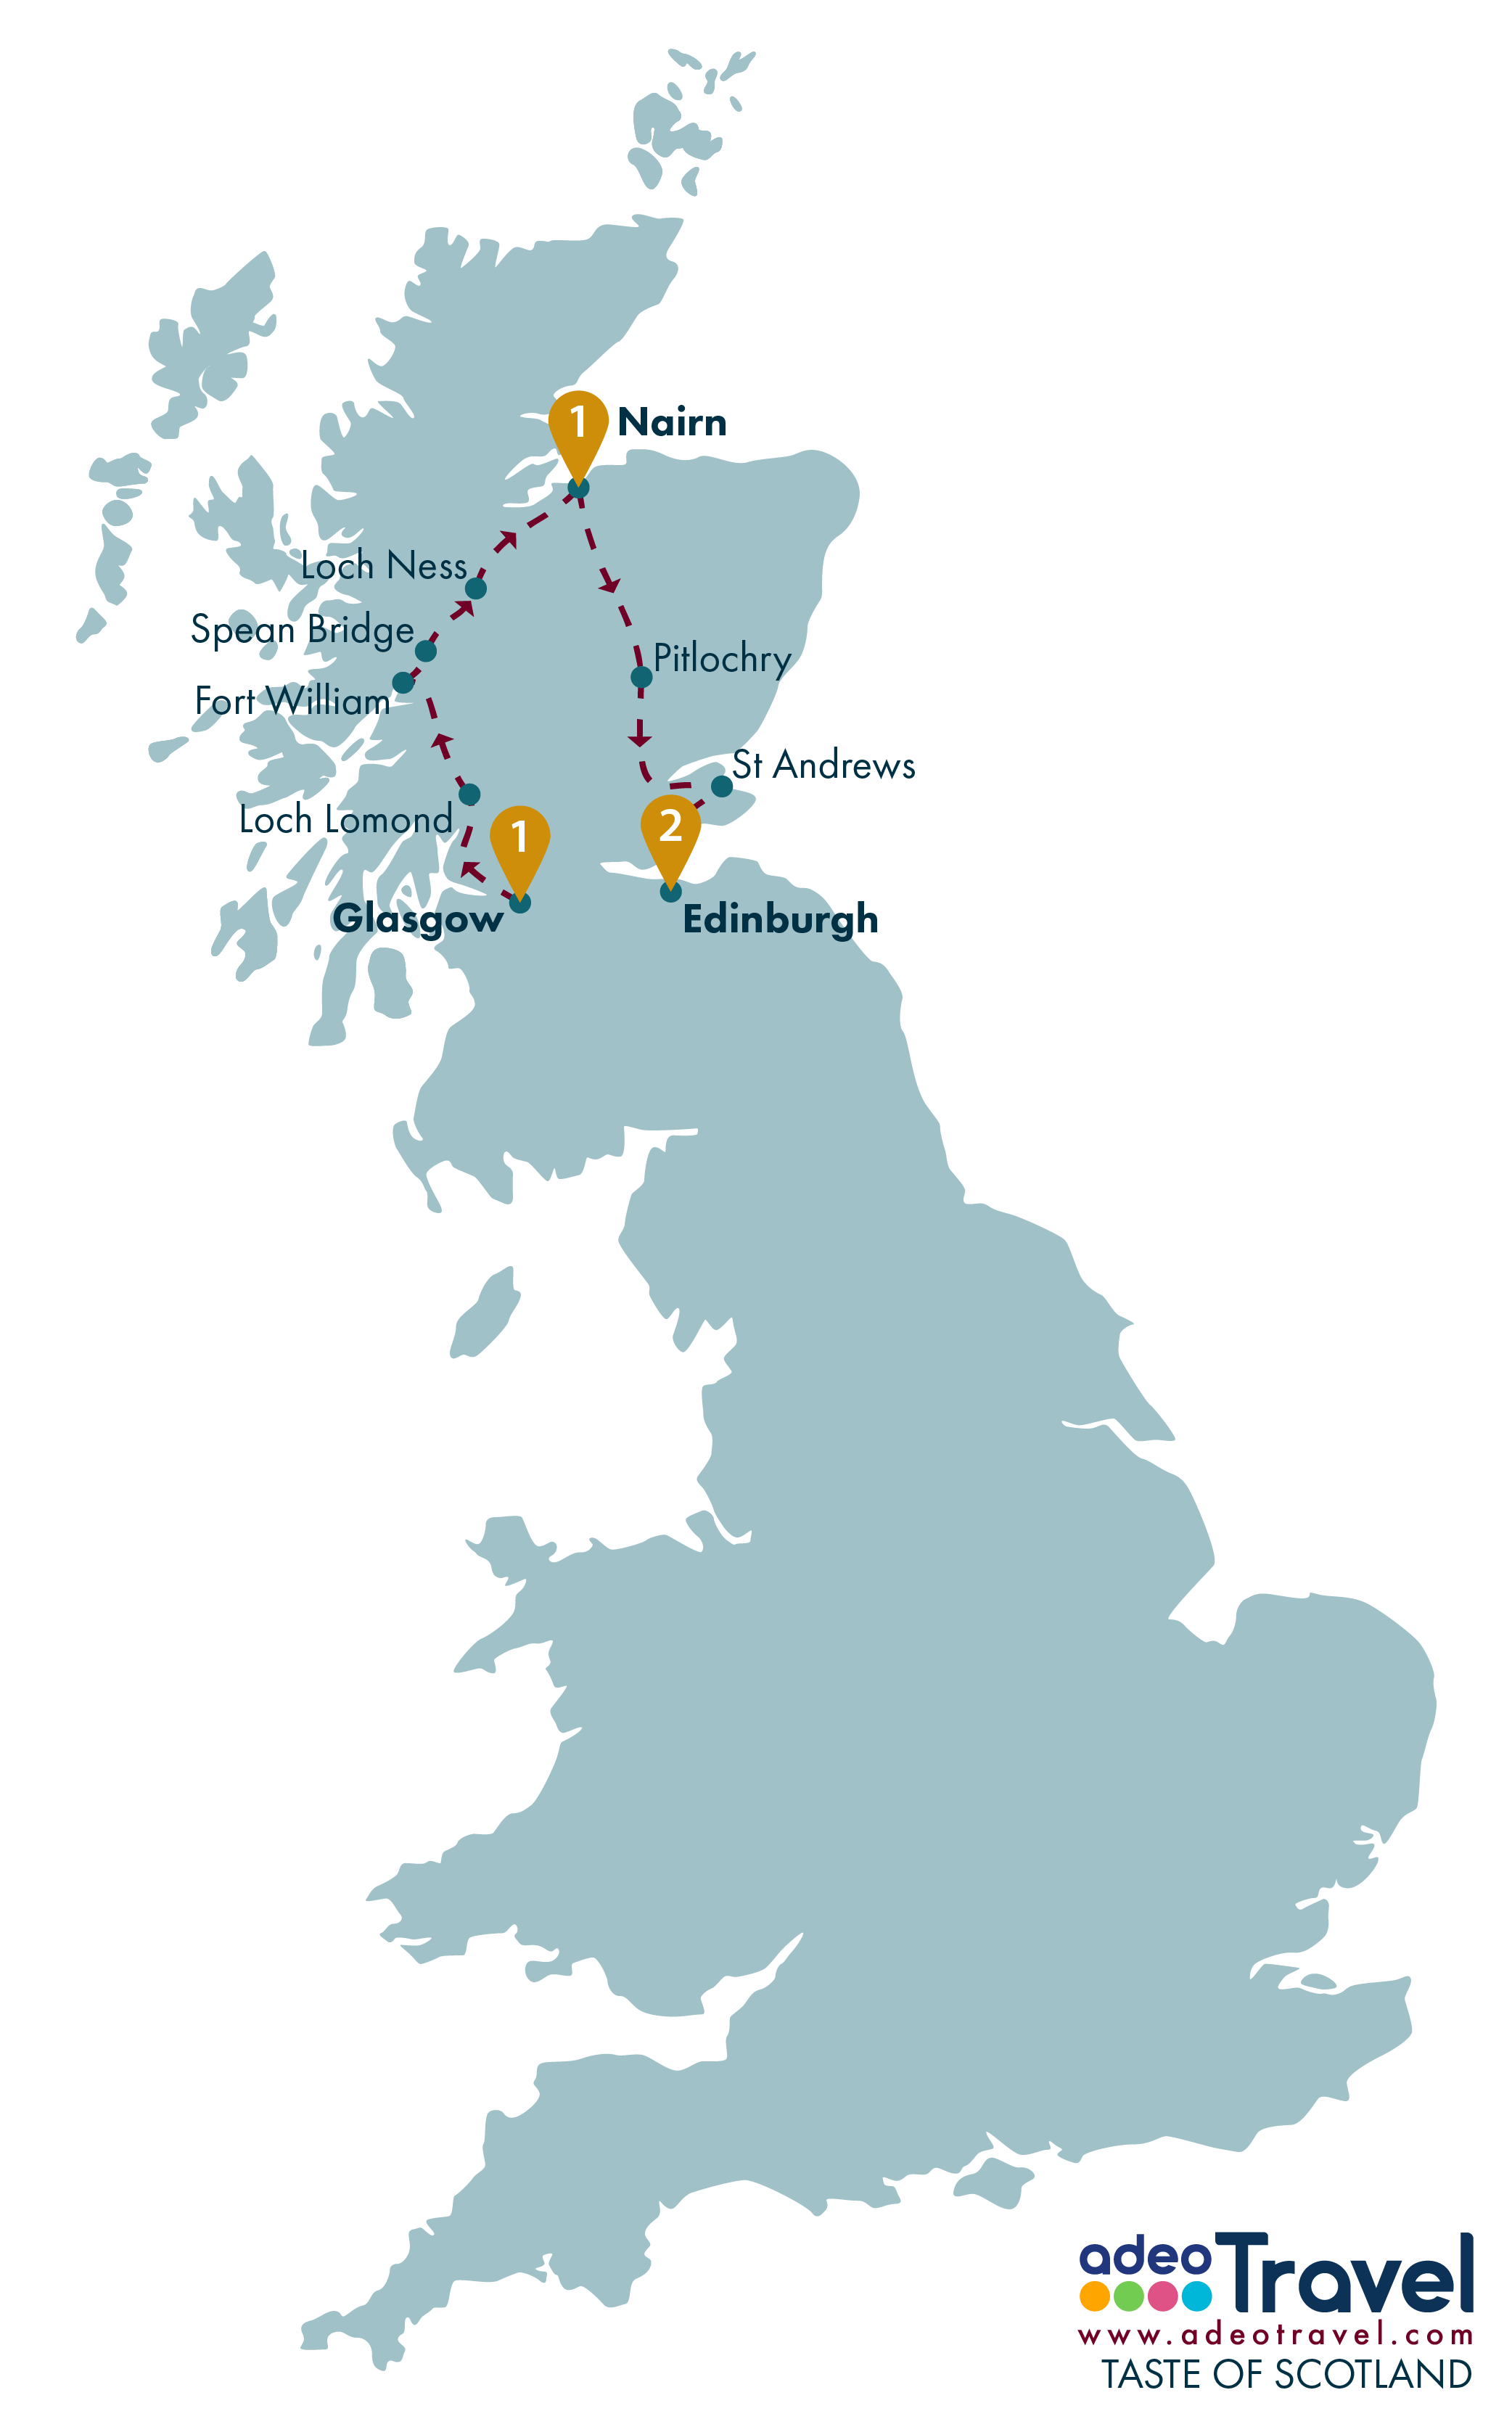 Tour Map - Taste of Scotland